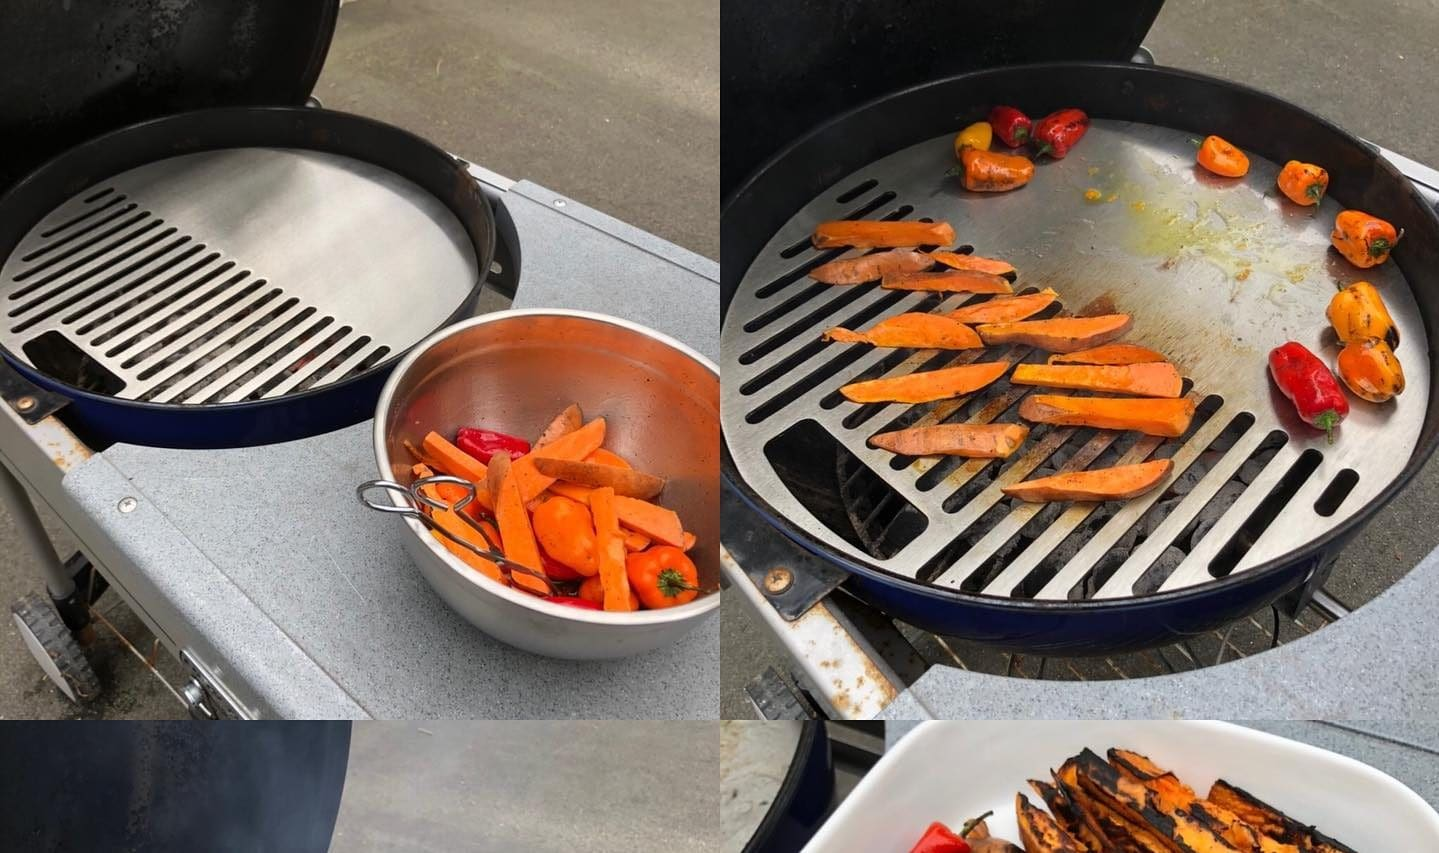 GrillingSteel™ Stainless Steel Griddles for Weber Kettle Now Available – Great Upgrade to Traditional Grill Grates